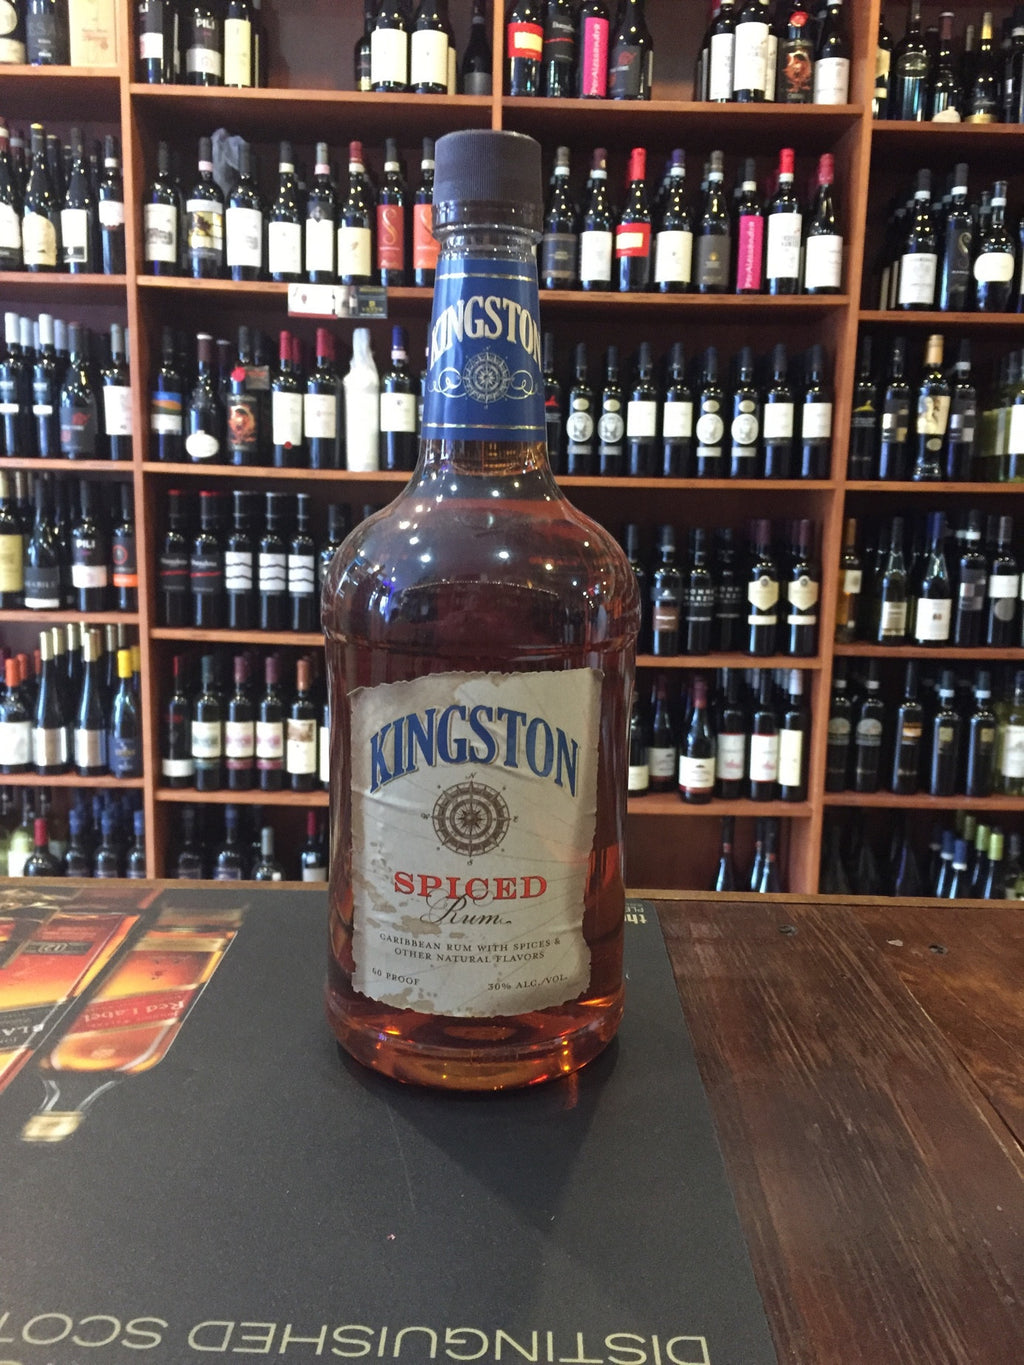 Kingston Spiced Rum 1.75L